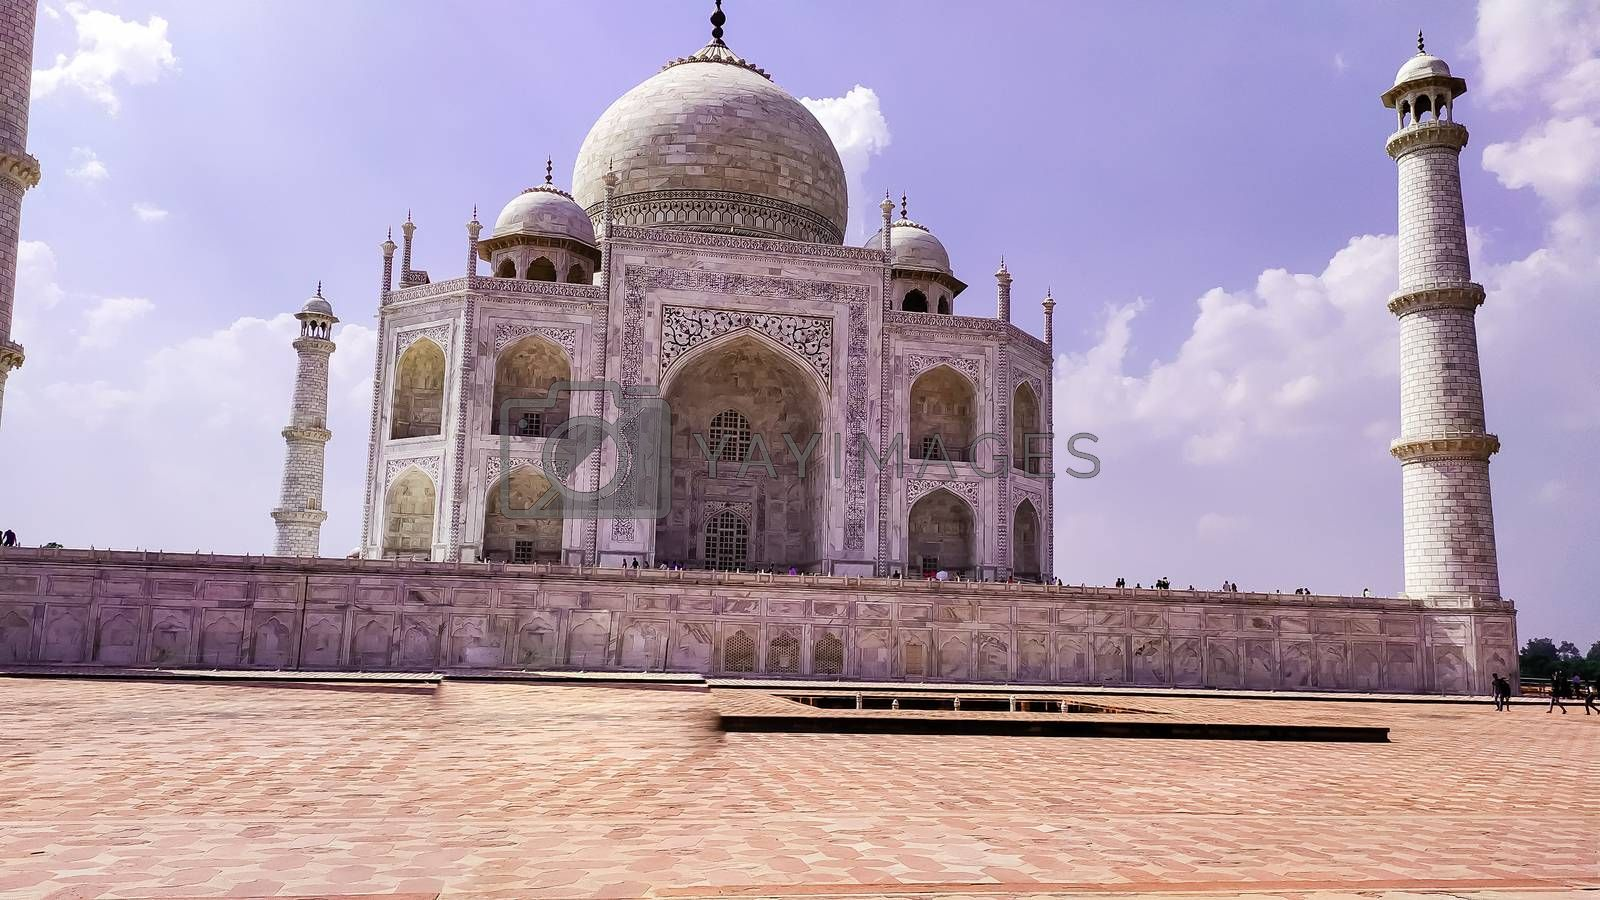 Front view Taj Mahal Tomb mausoleum with large pavilion in the foreground. It is a white marble of Mughal emperor Shah Jahan in memory of his wife Mumtaj. Taj Mahal is jewel of Muslim art and masterpieces of world heritage. Agra, Uttar Pradesh India South Asia Pac May 2019